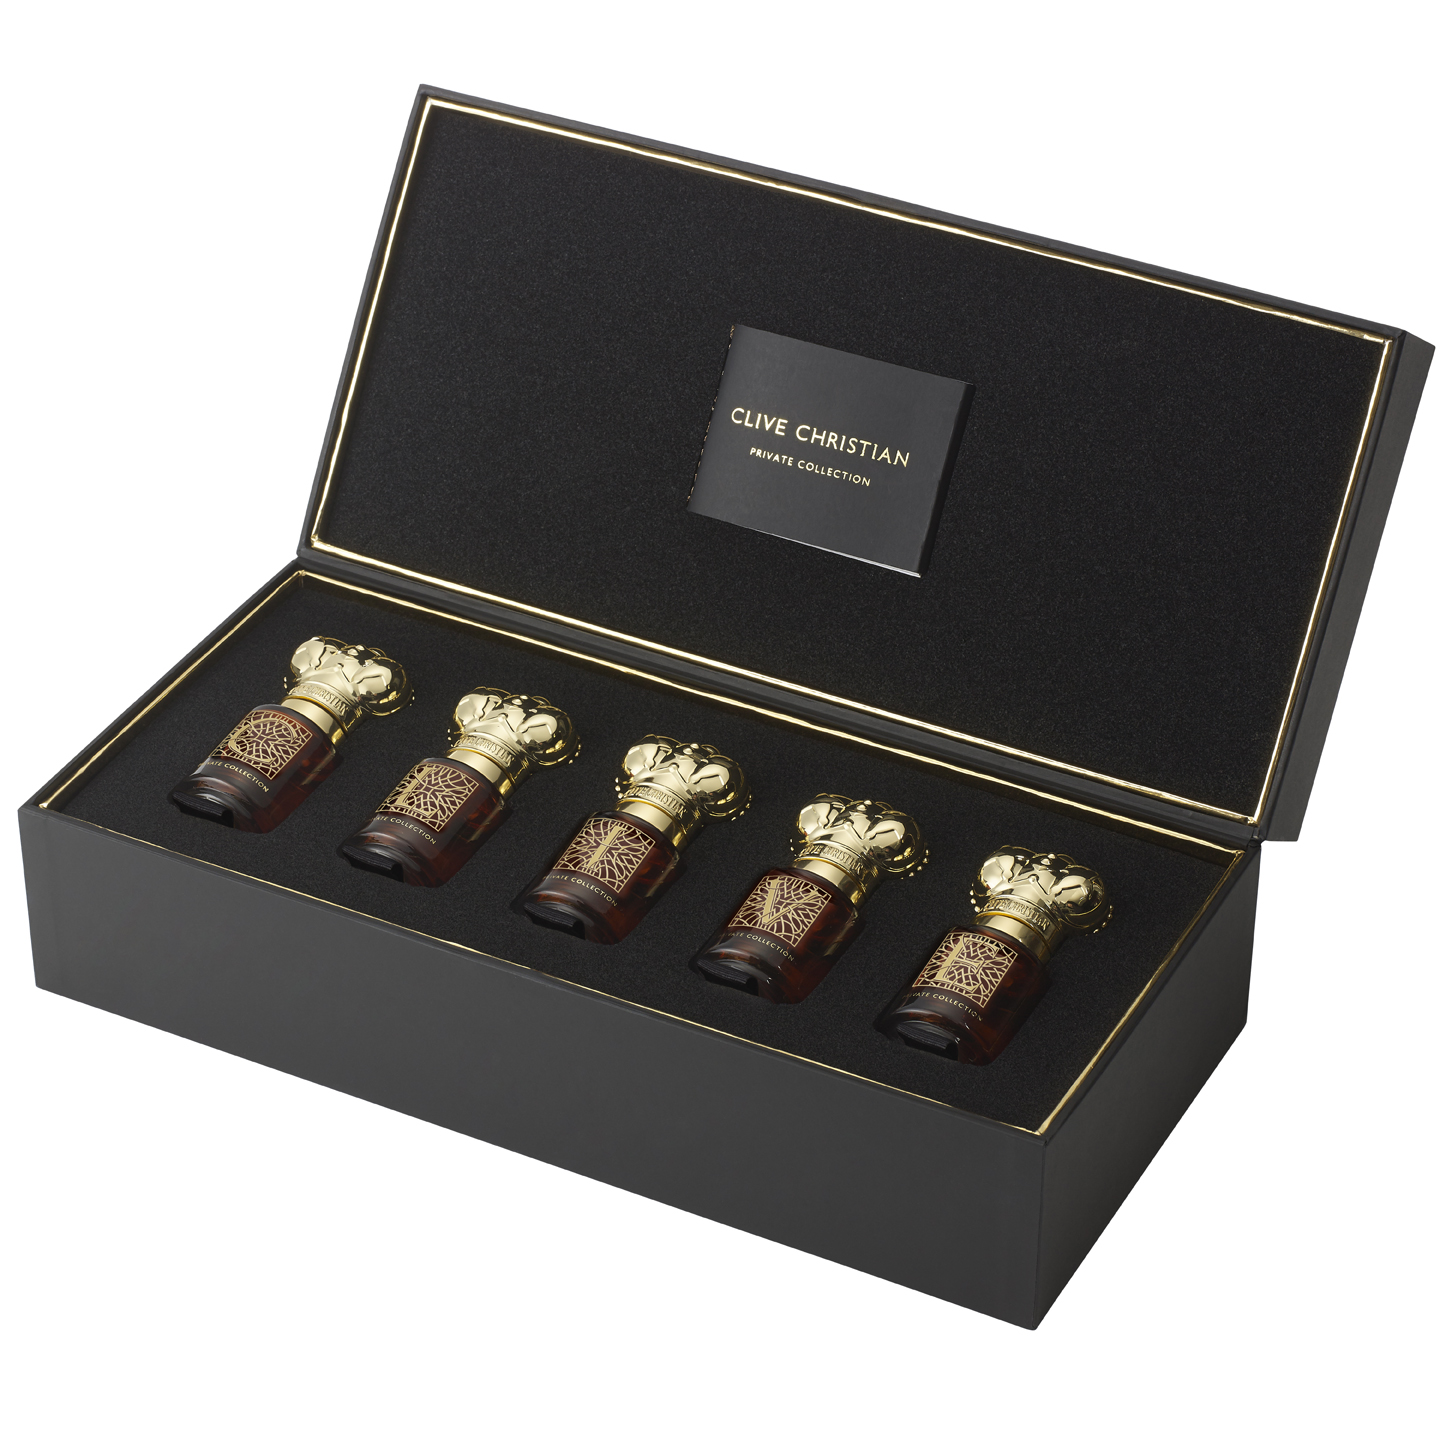 CLIVE CHRISTIAN Private Collection Masculine Edition gift set 5 x 10 ml